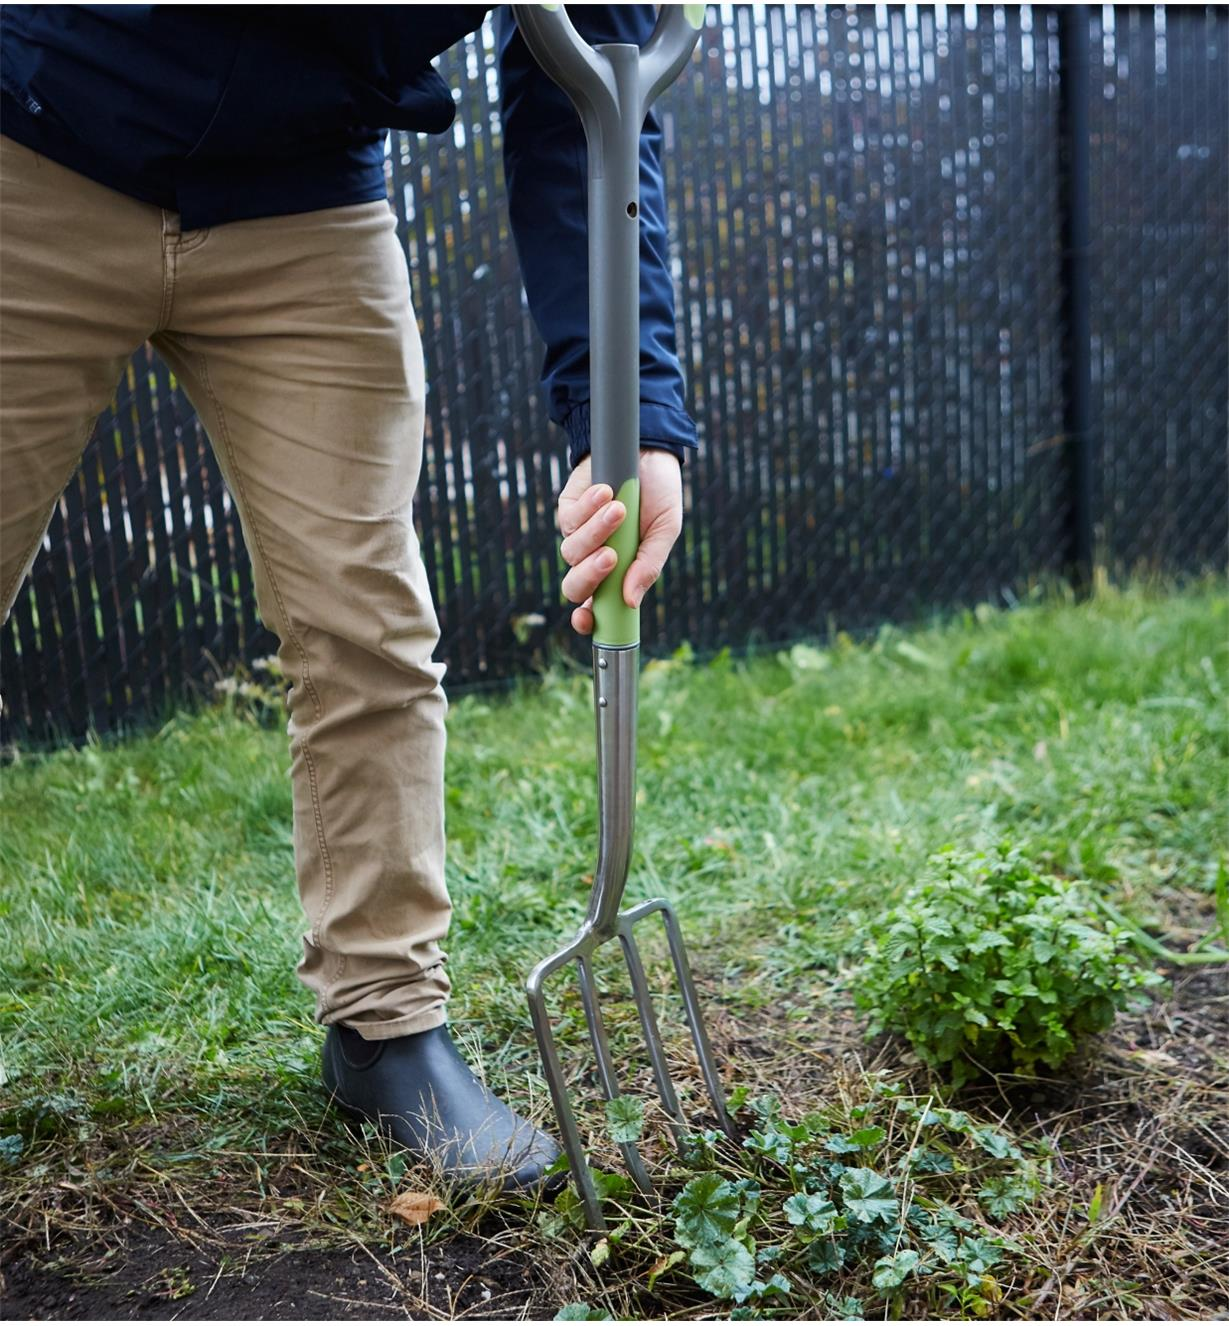 A man digs in a garden using the Radius Ergonomic Stainless-Steel Digging Fork